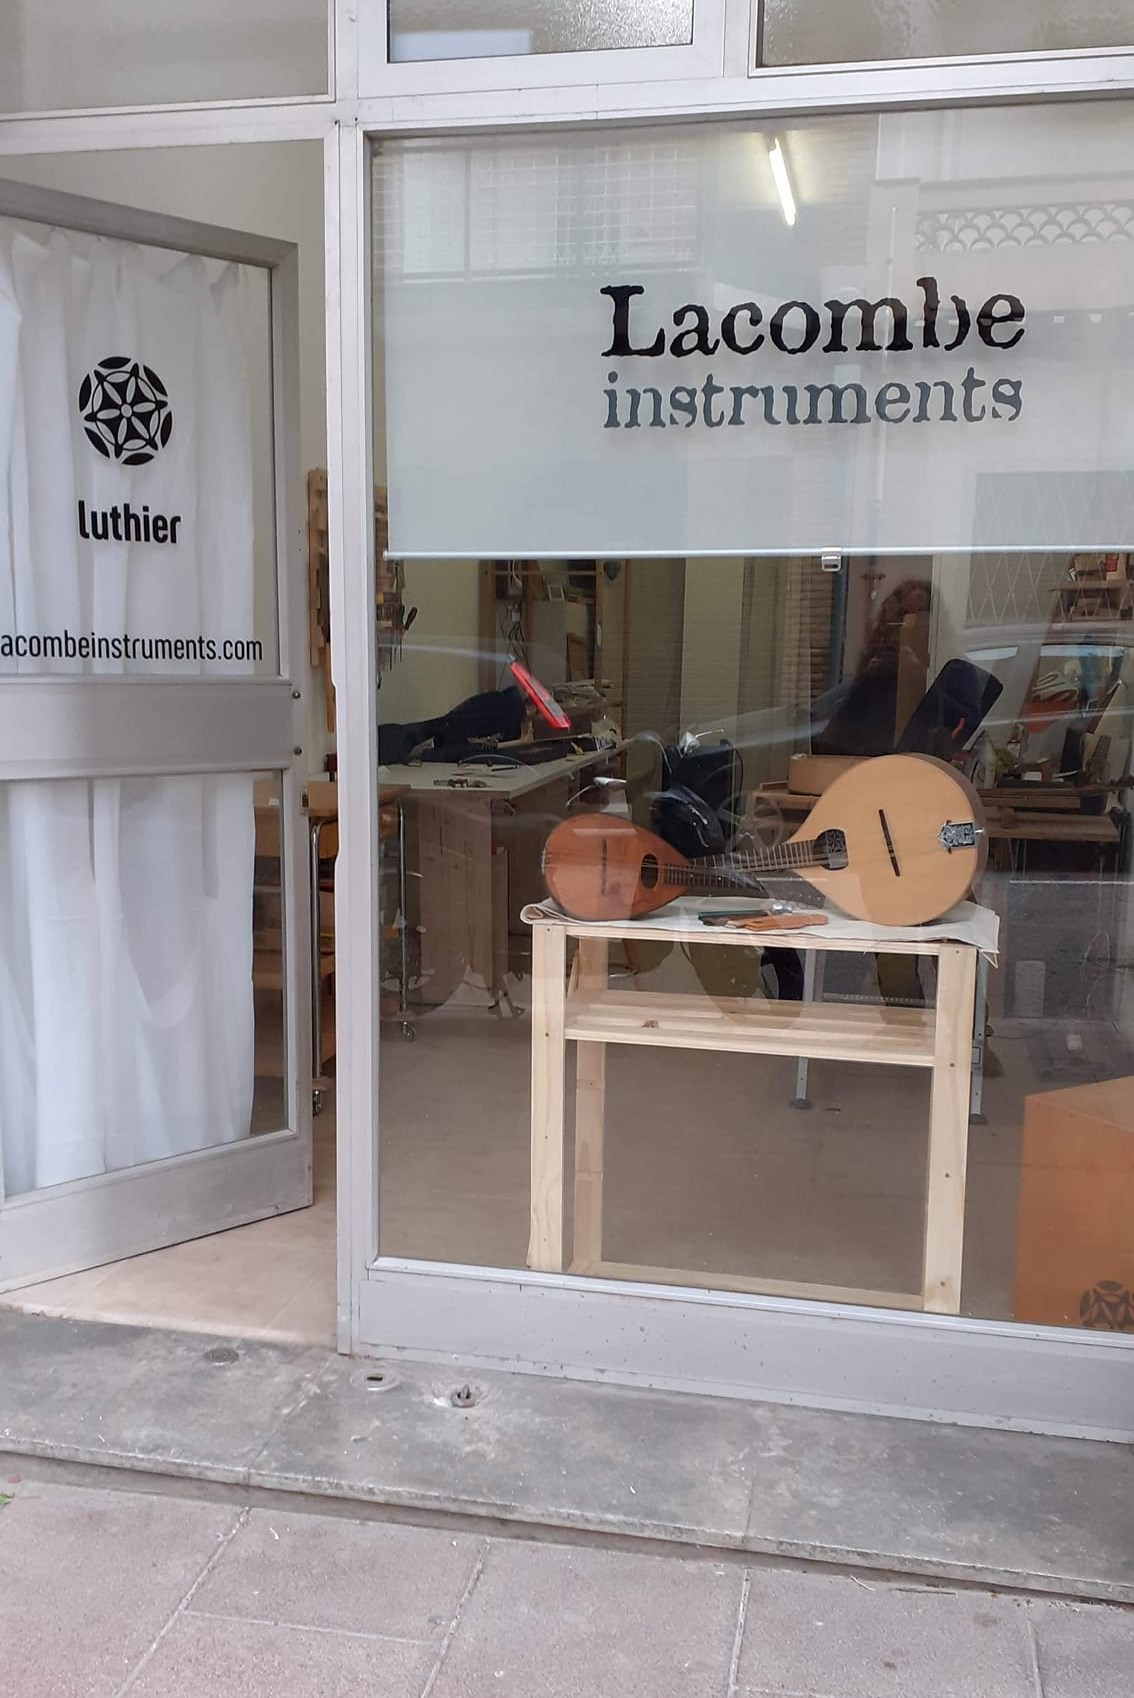 LacombeInstruments